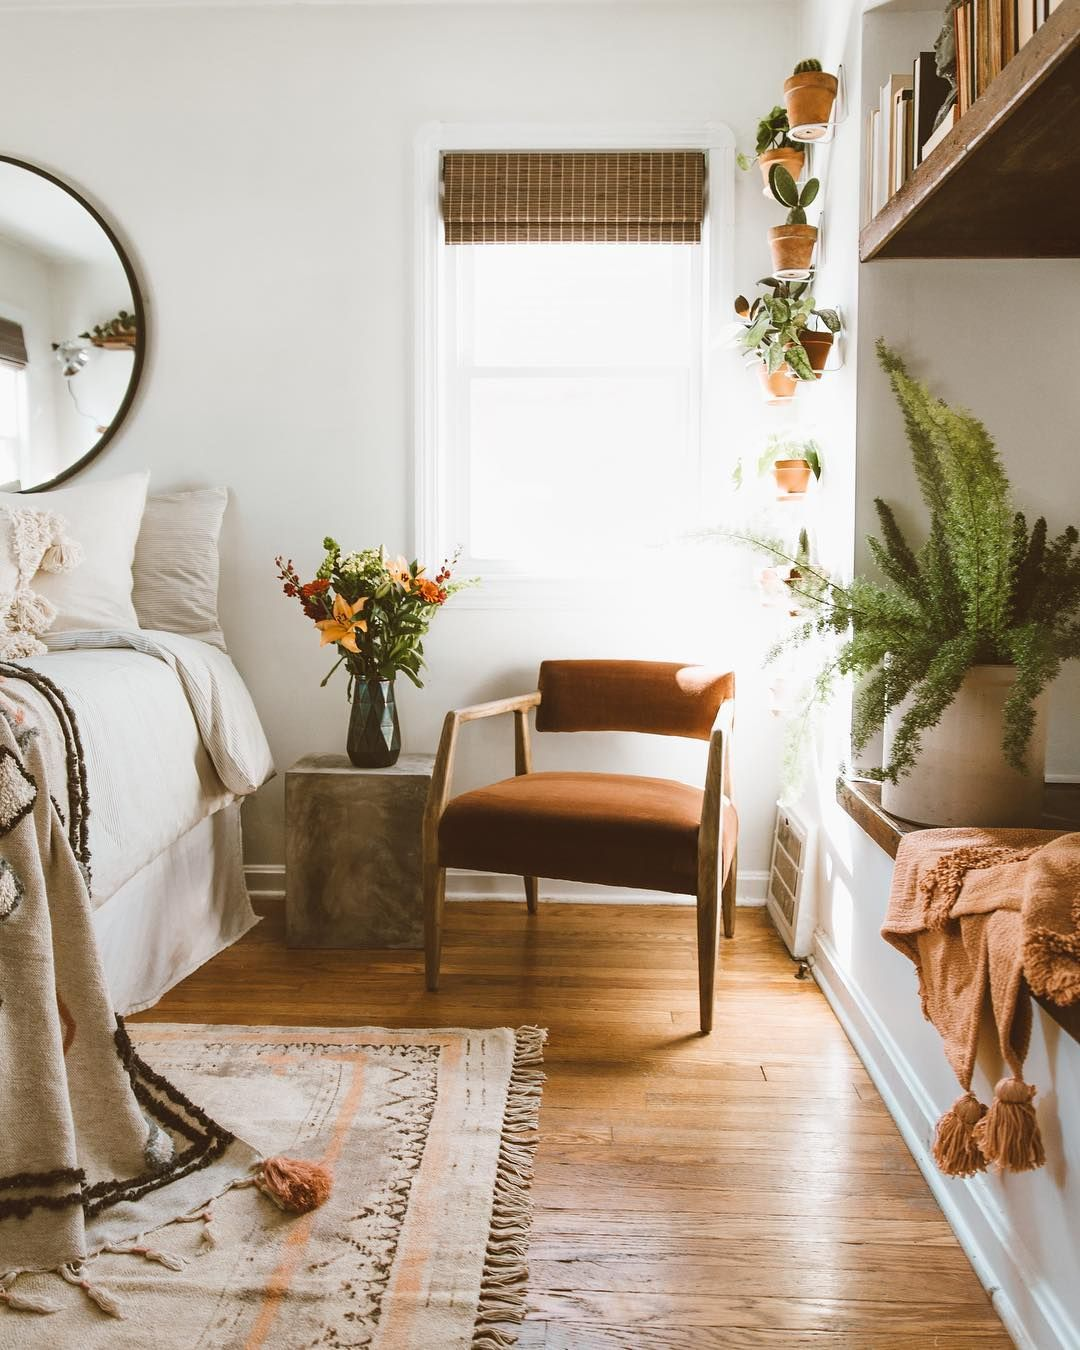 Pin By J.quely On Home Decor In 2019